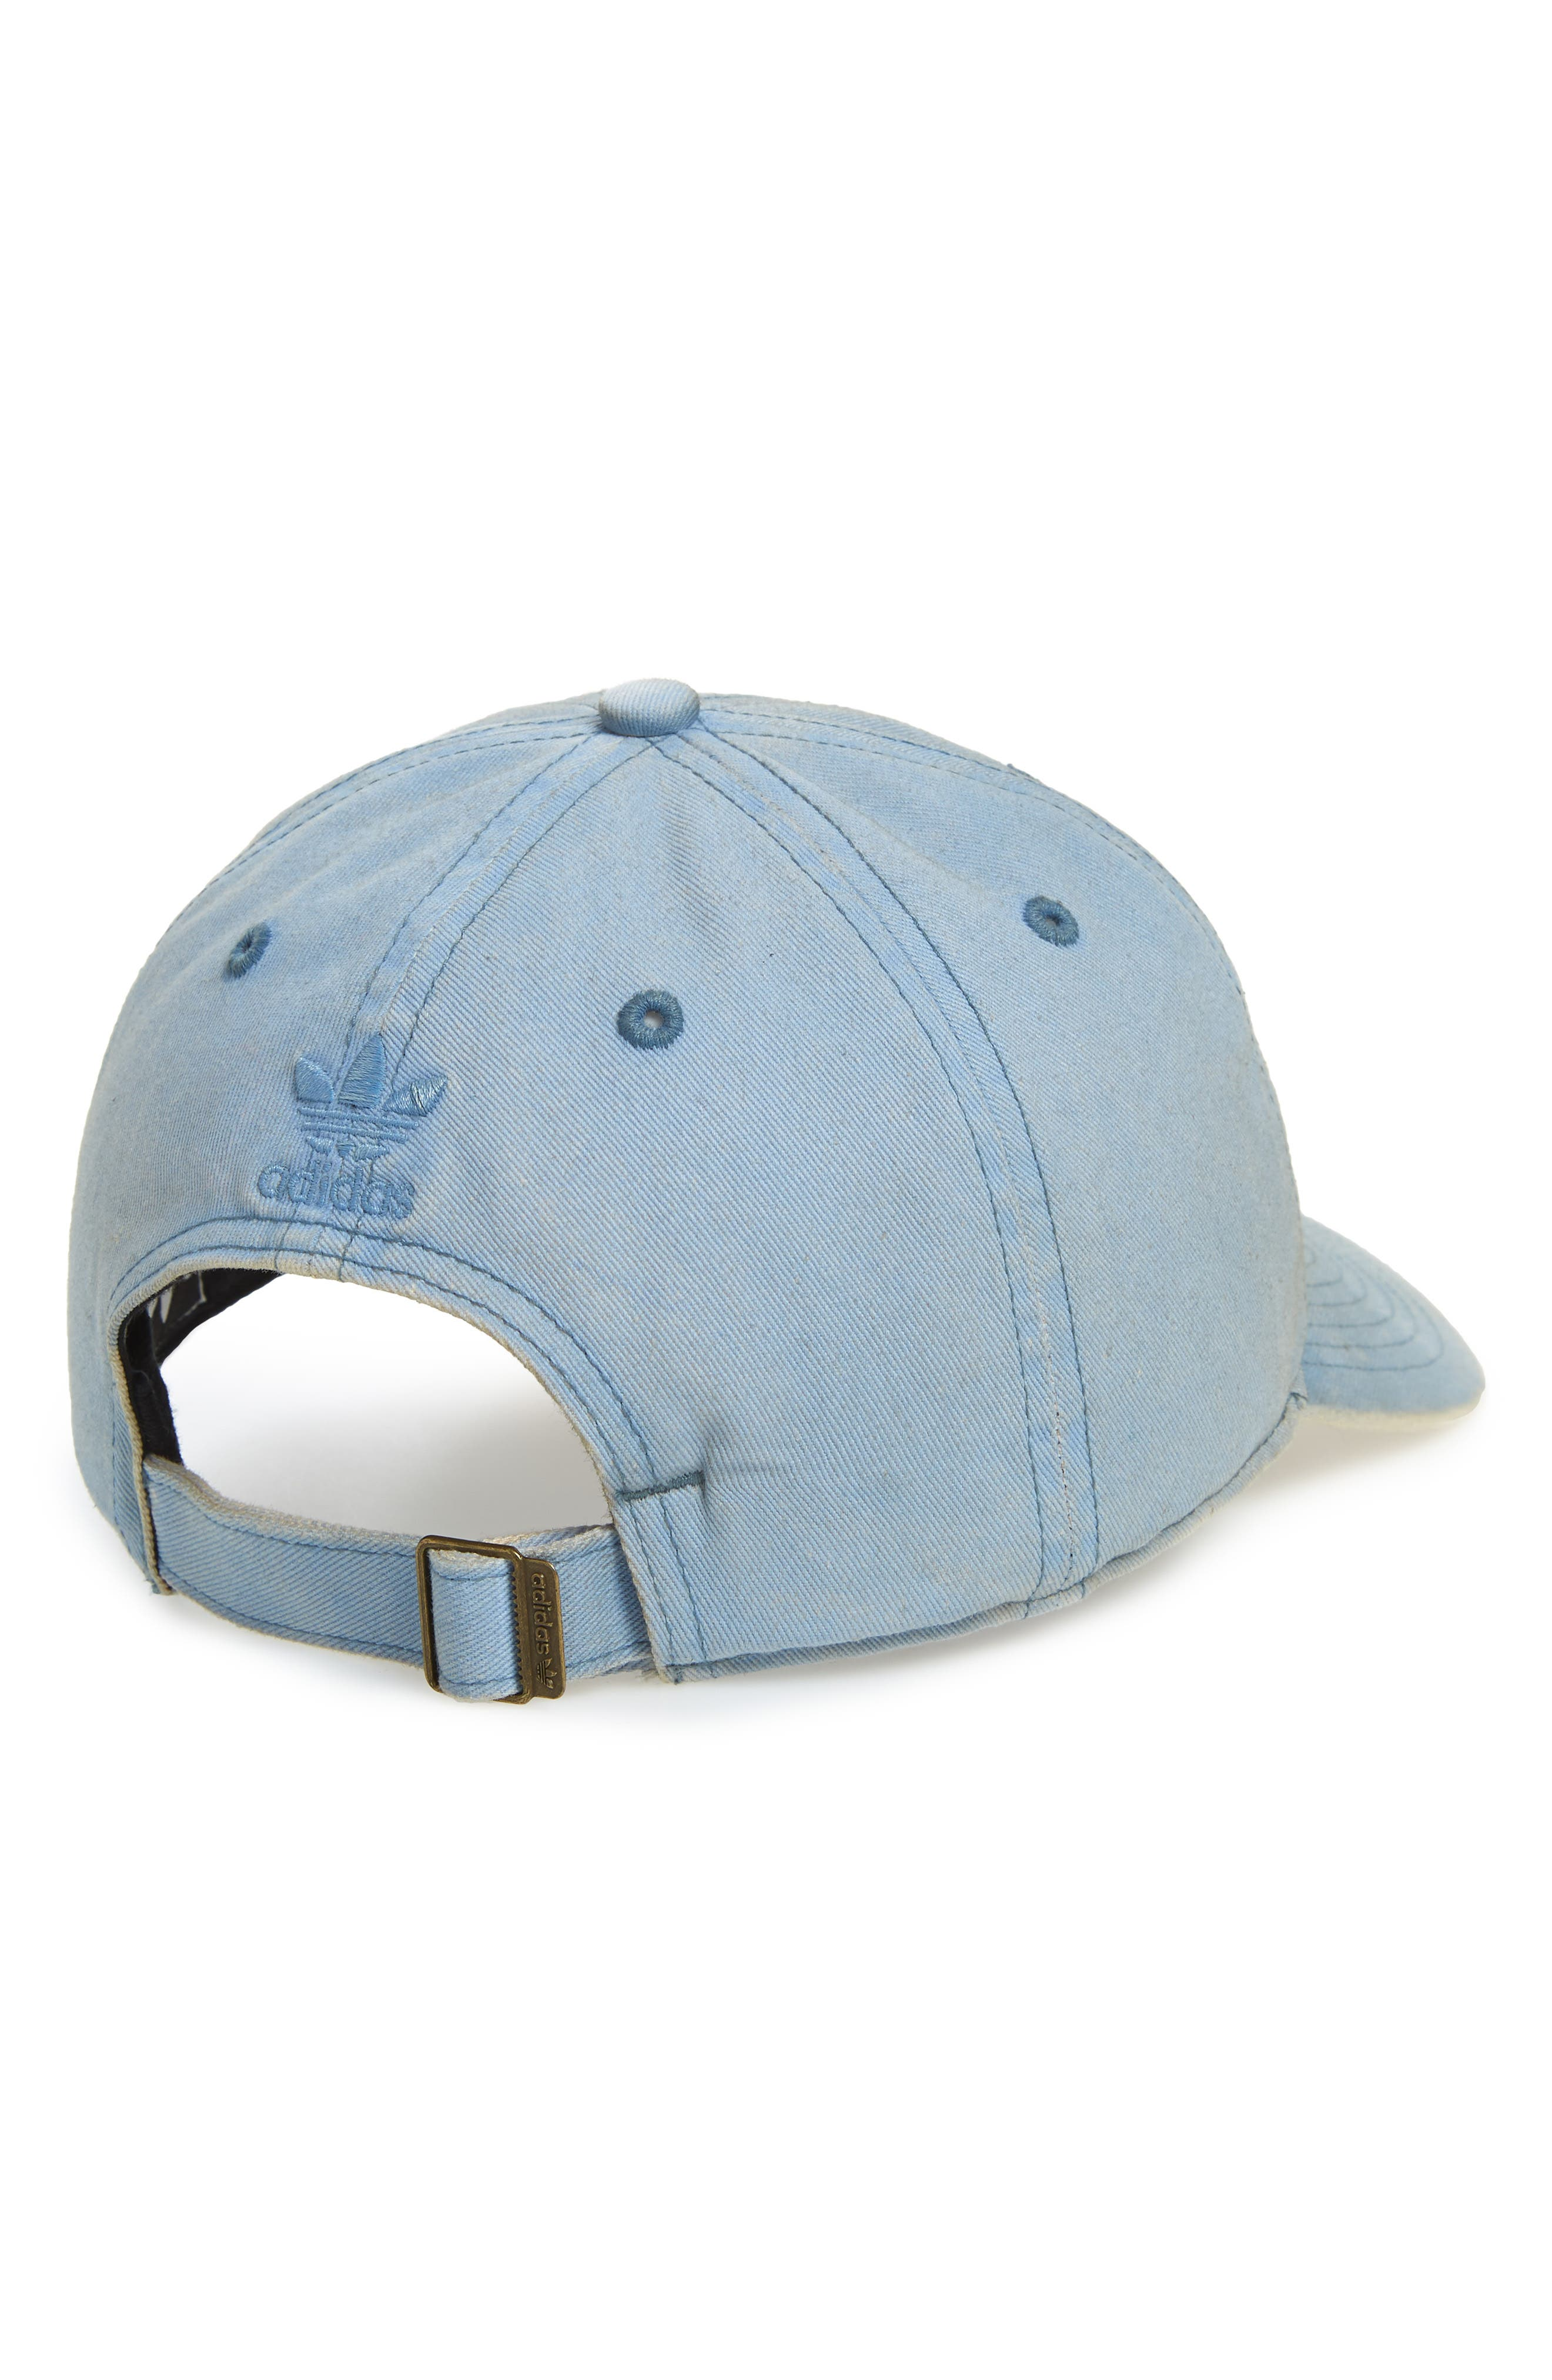 cfc2f3eac3d Adidas Hats for Women